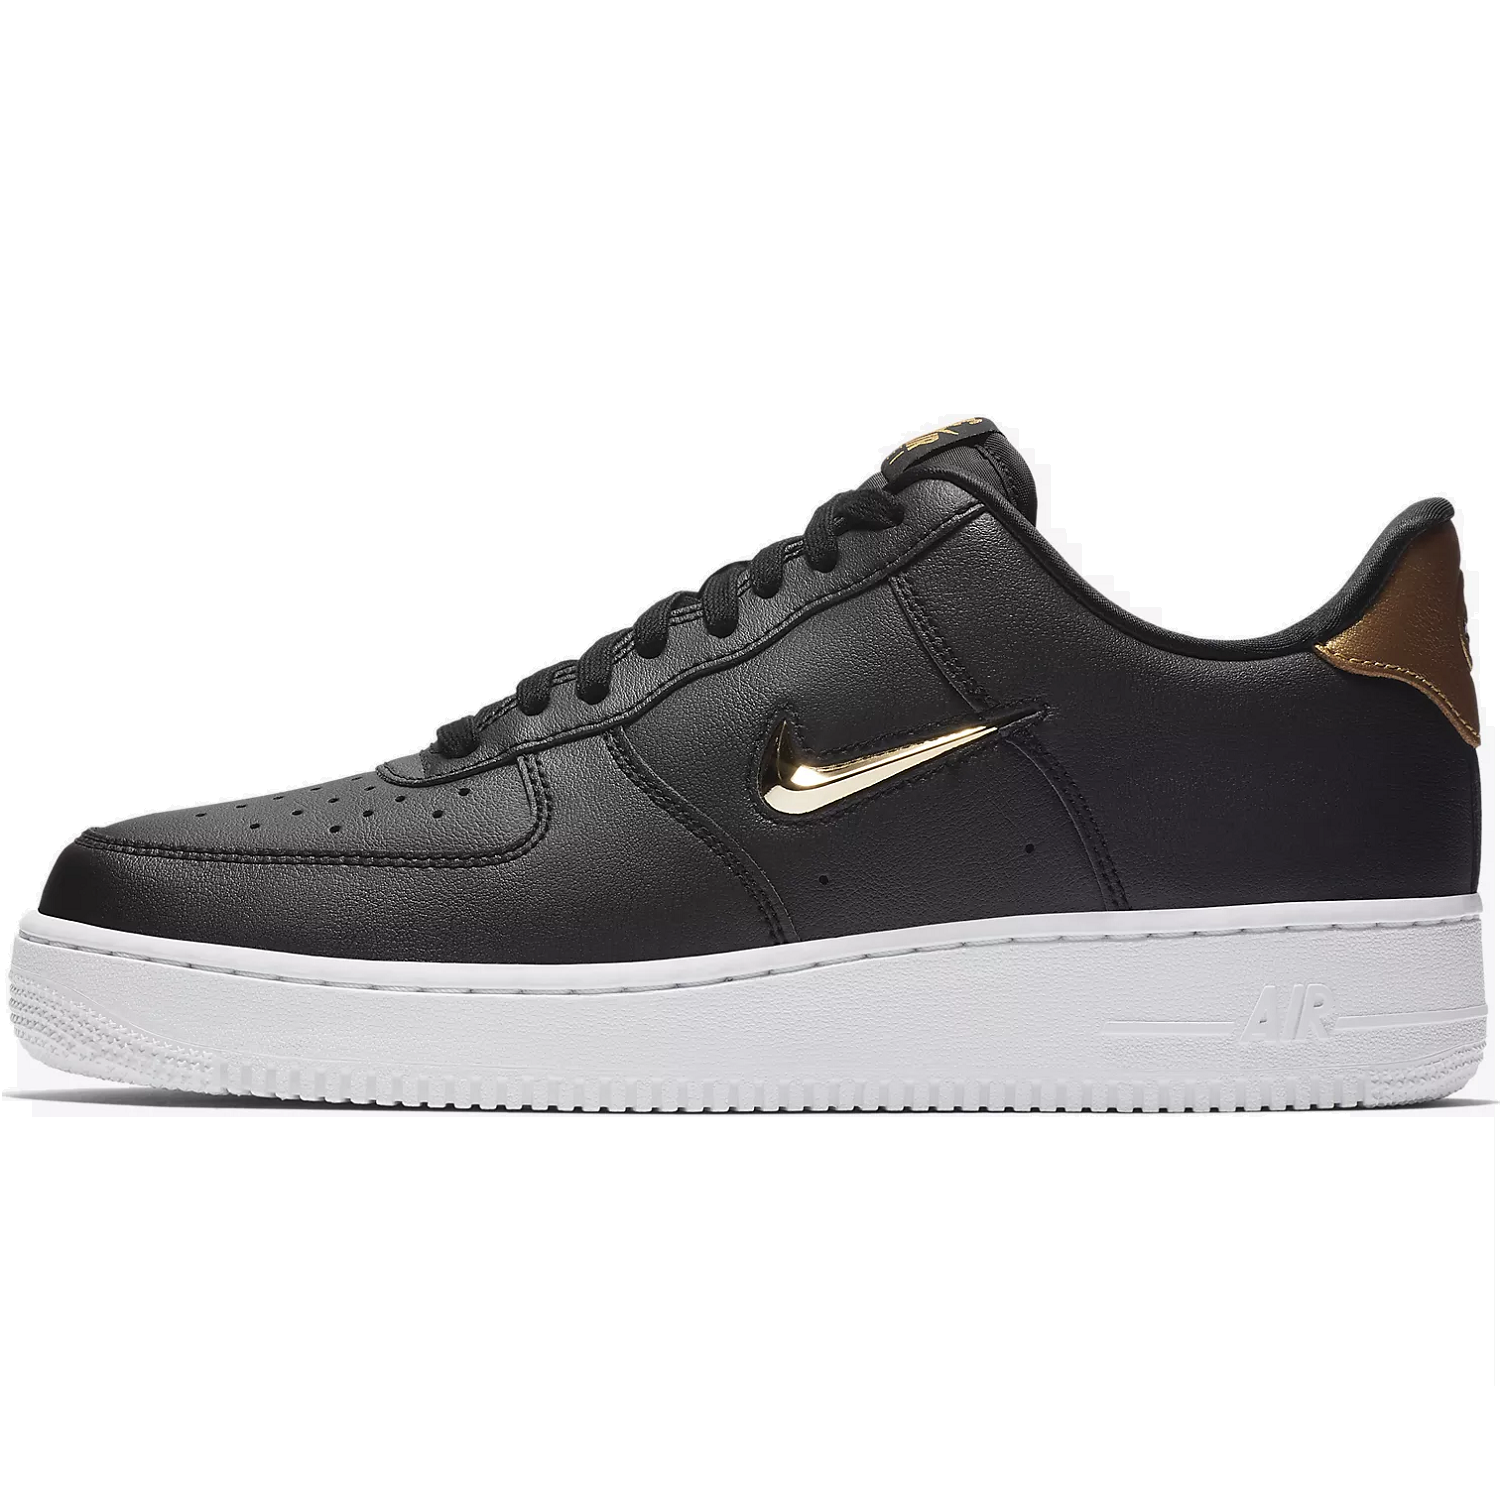 3ebcdd02daa0cf Nike Air Force One 1 07 LV8 Leather Special Edition Sneaker schwarz weiß  gold